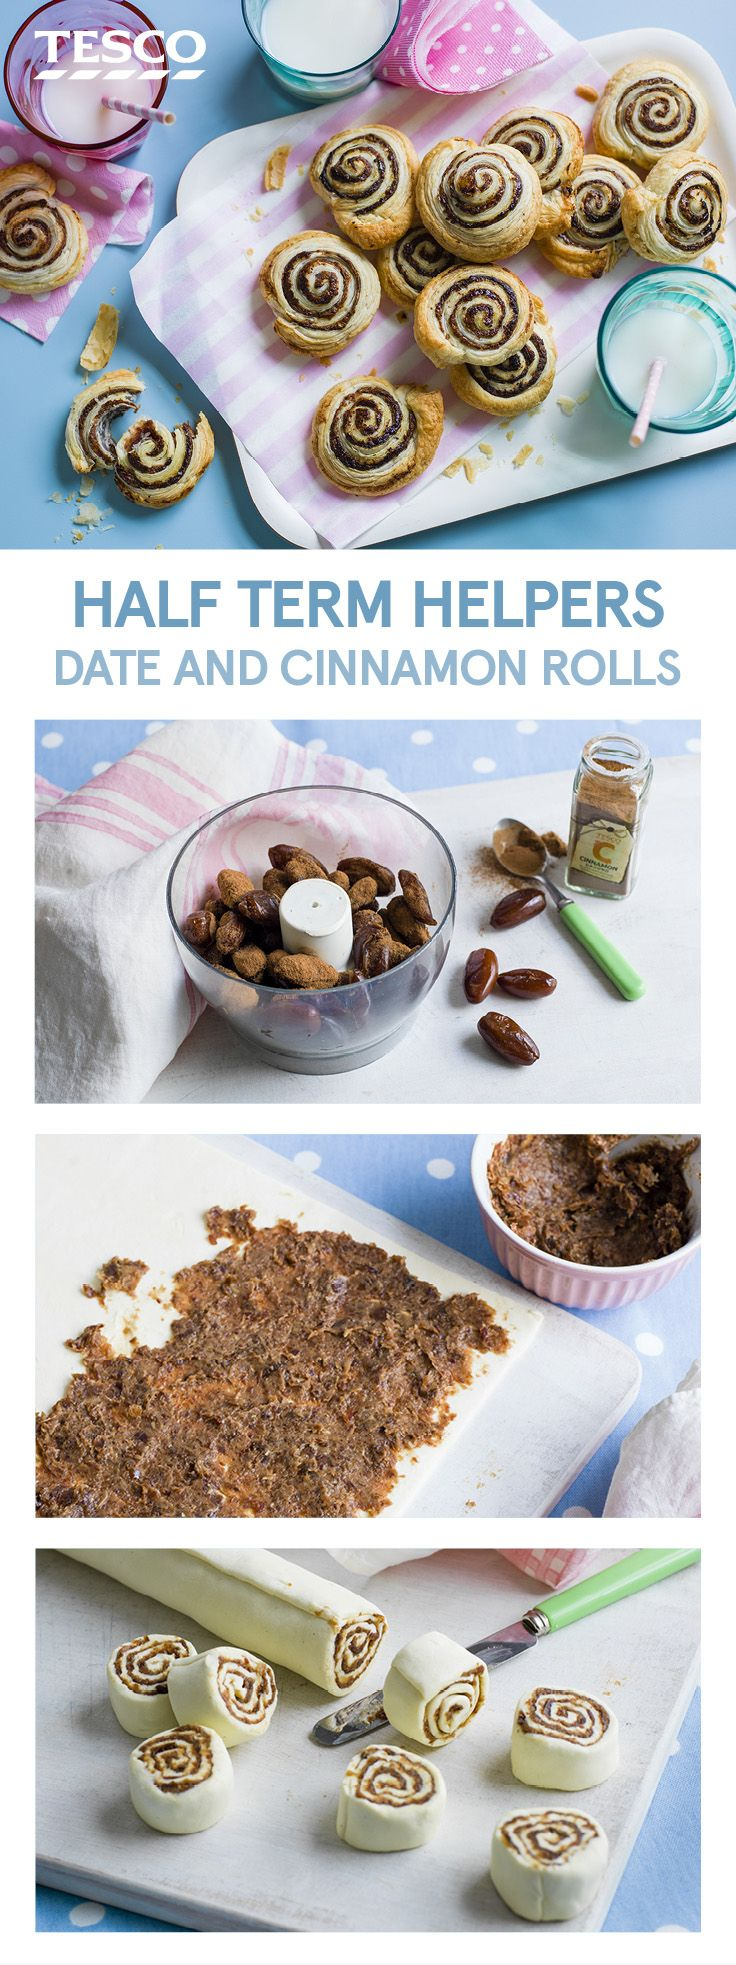 Keep the little ones fuelled for half-term adventures with these date and cinnamon rolls. Made in just three super simple steps, these delicious pastries are a great way to get kids excited about baking. | Tesco